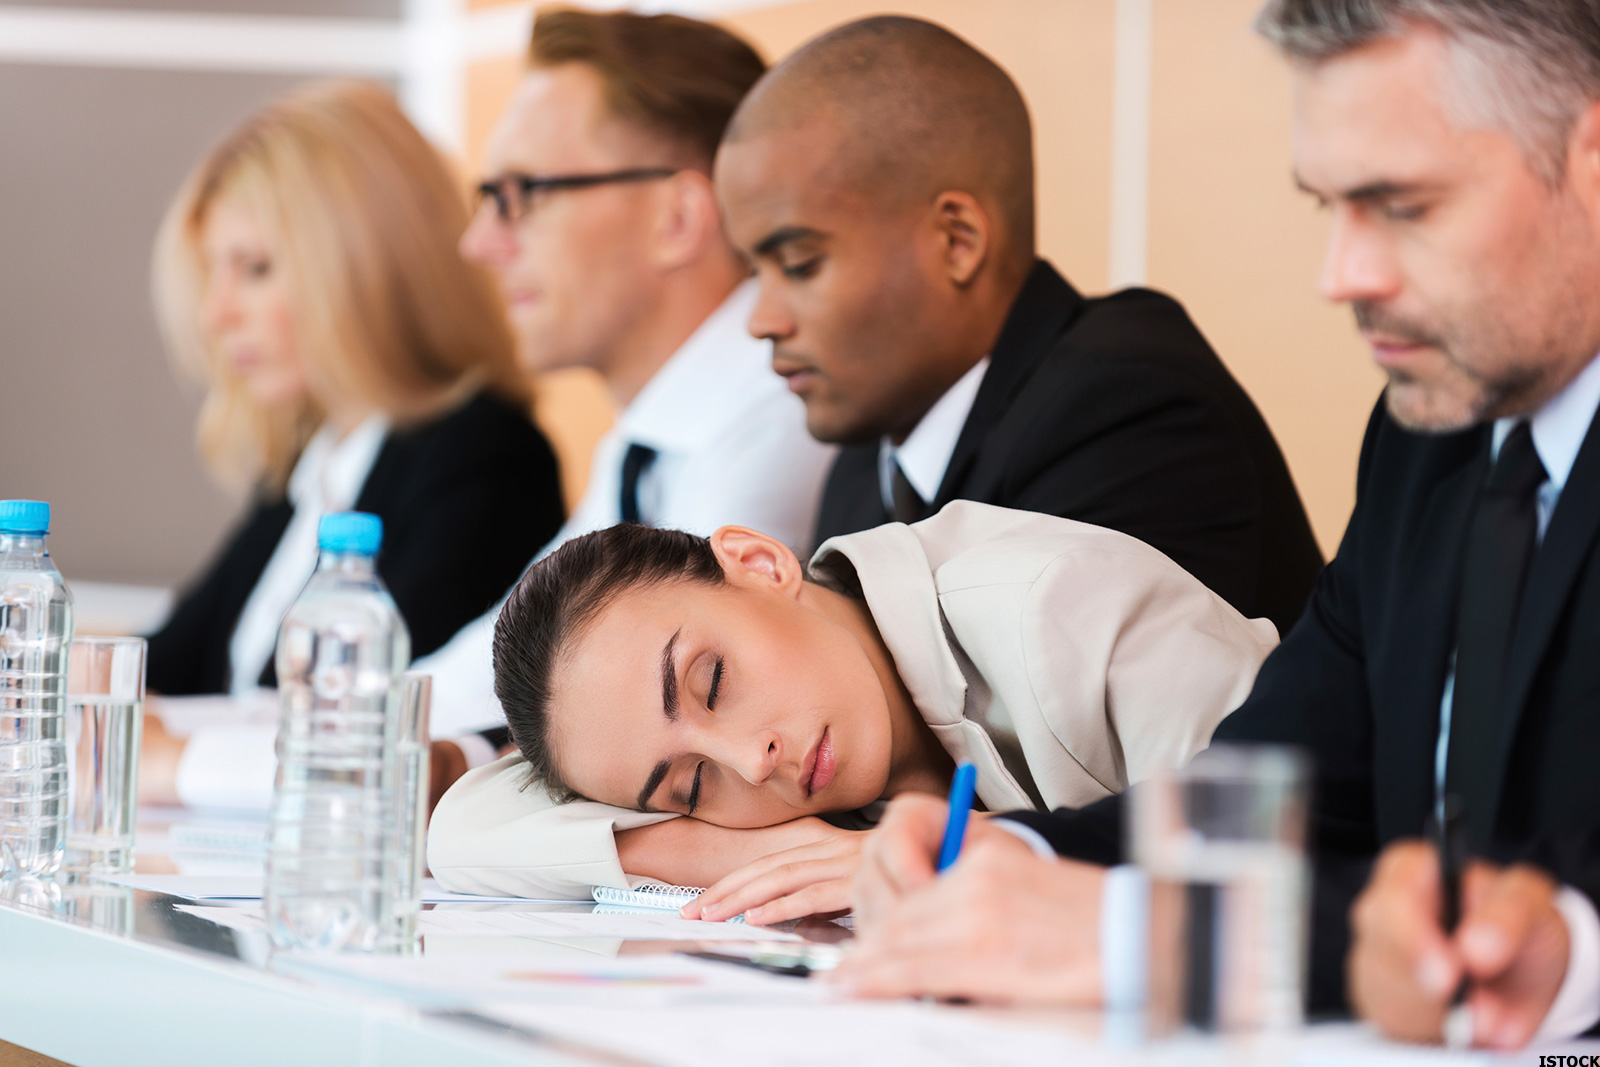 sleeping conference tired sleep meetings hours table night four meeting engineering during person unhappy businesswoman conferences better reasons asleep job